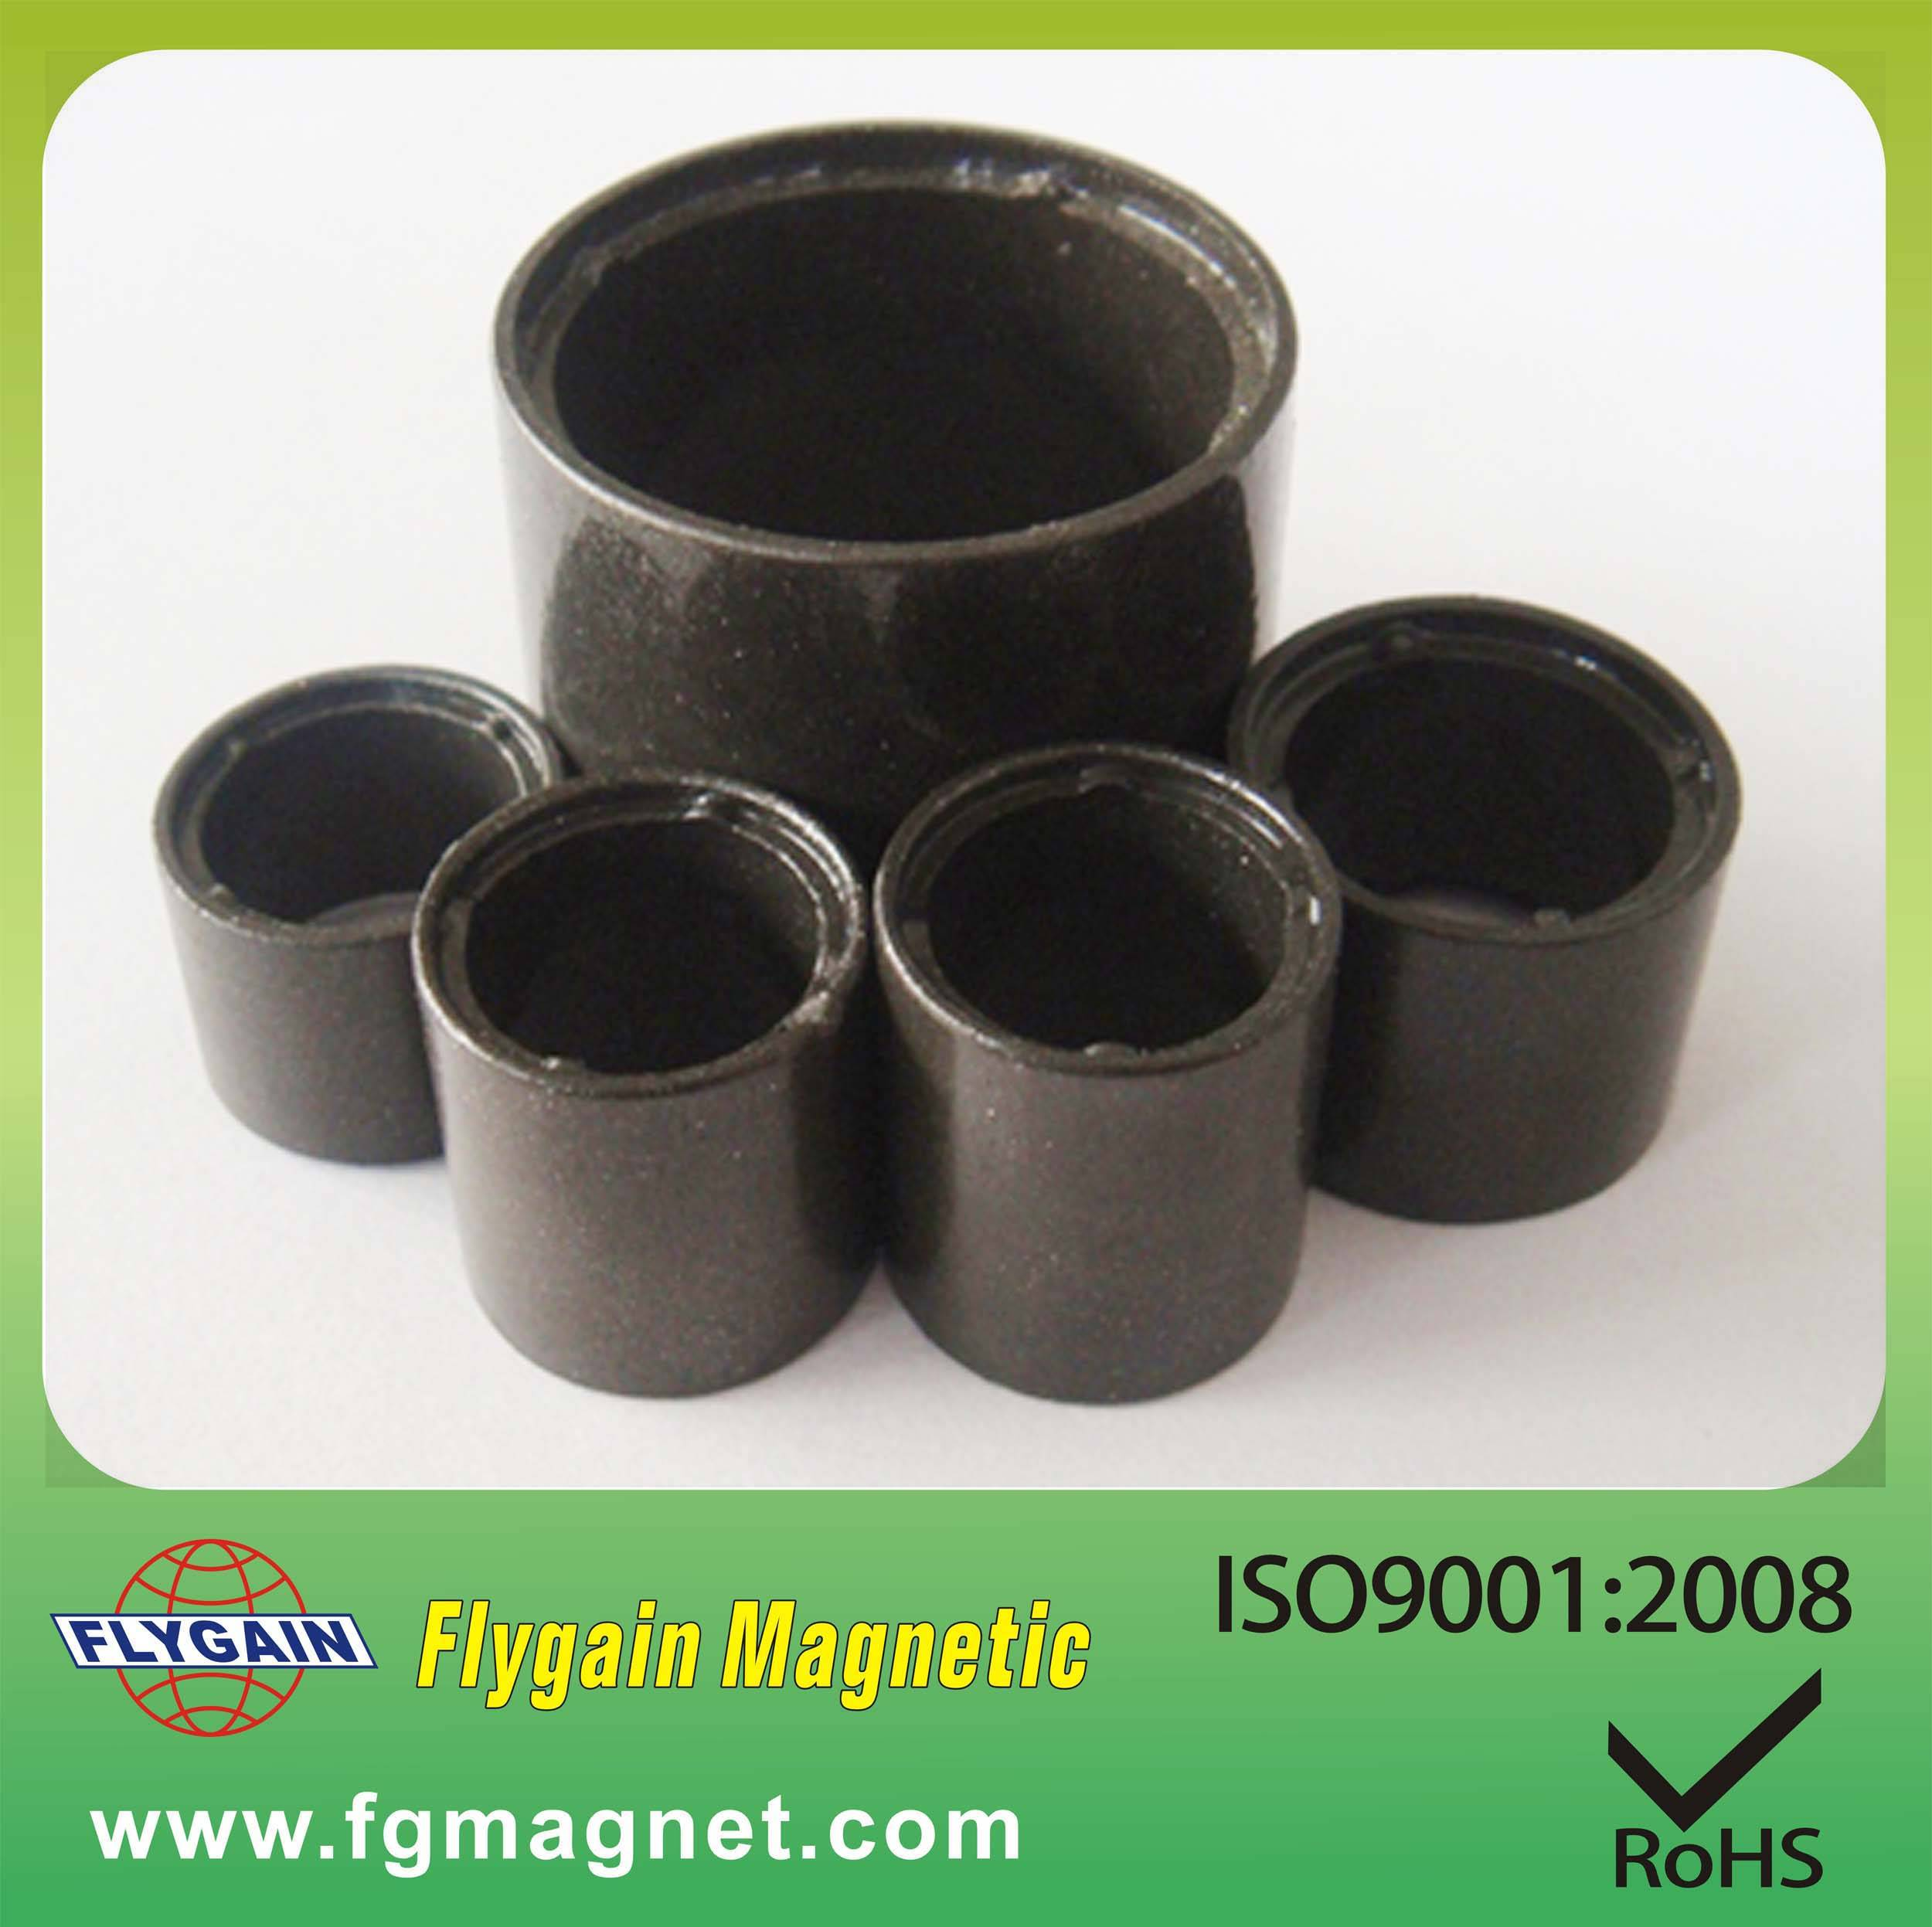 injection molded magnet